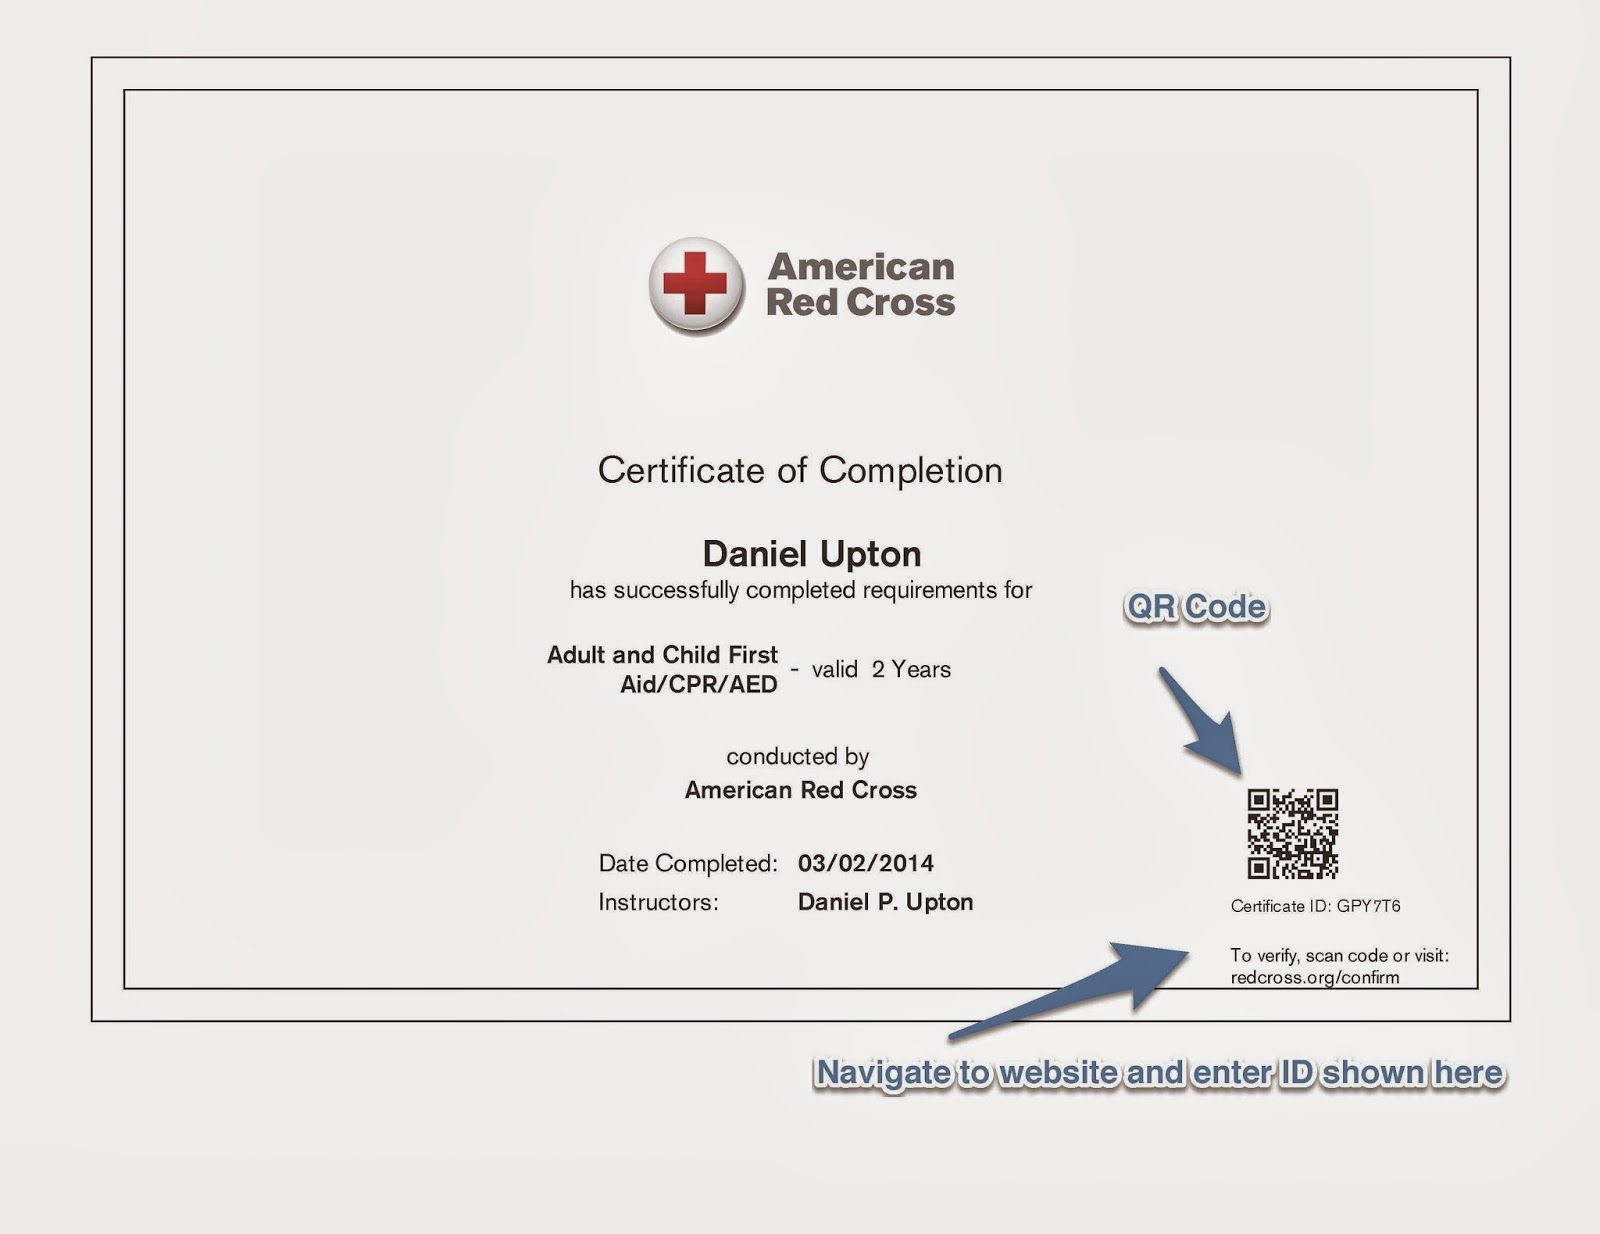 American Red Cross Cpr Card Template Aha Training Center Regarding Cpr Card Template Best Professional Templates Card Template Business Template Cpr Card